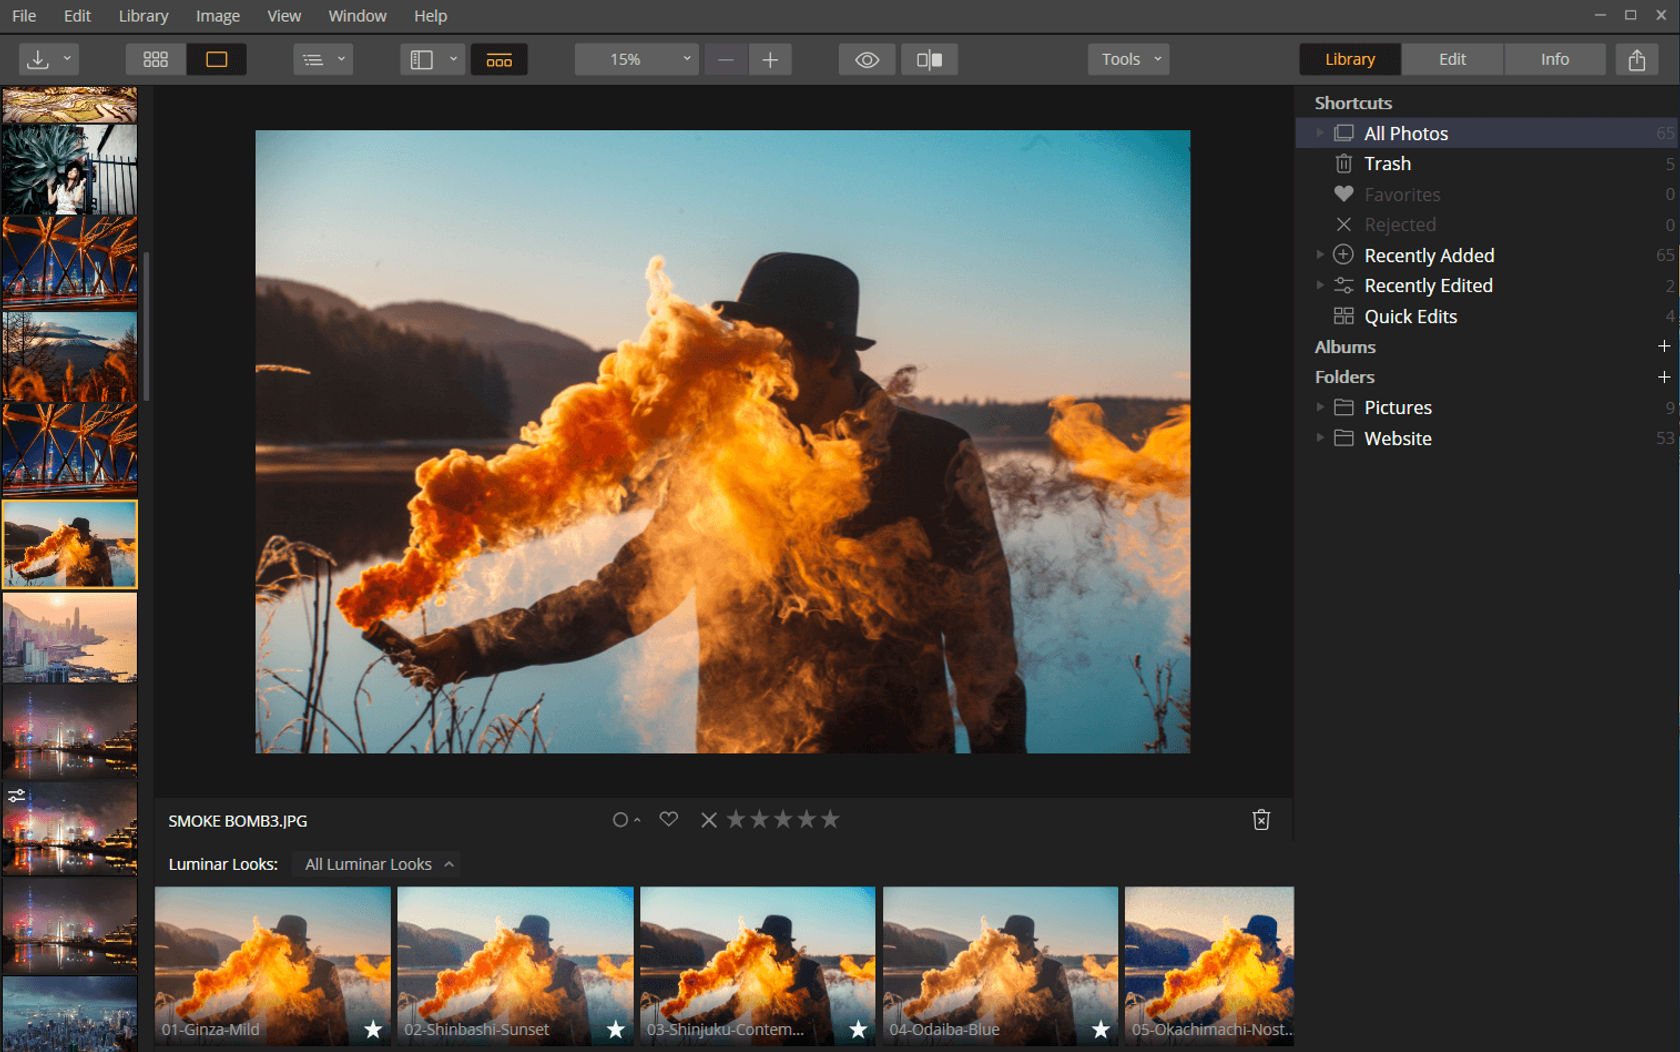 Smoke Bomb Photography You Can Master Quickly and Easily Image1